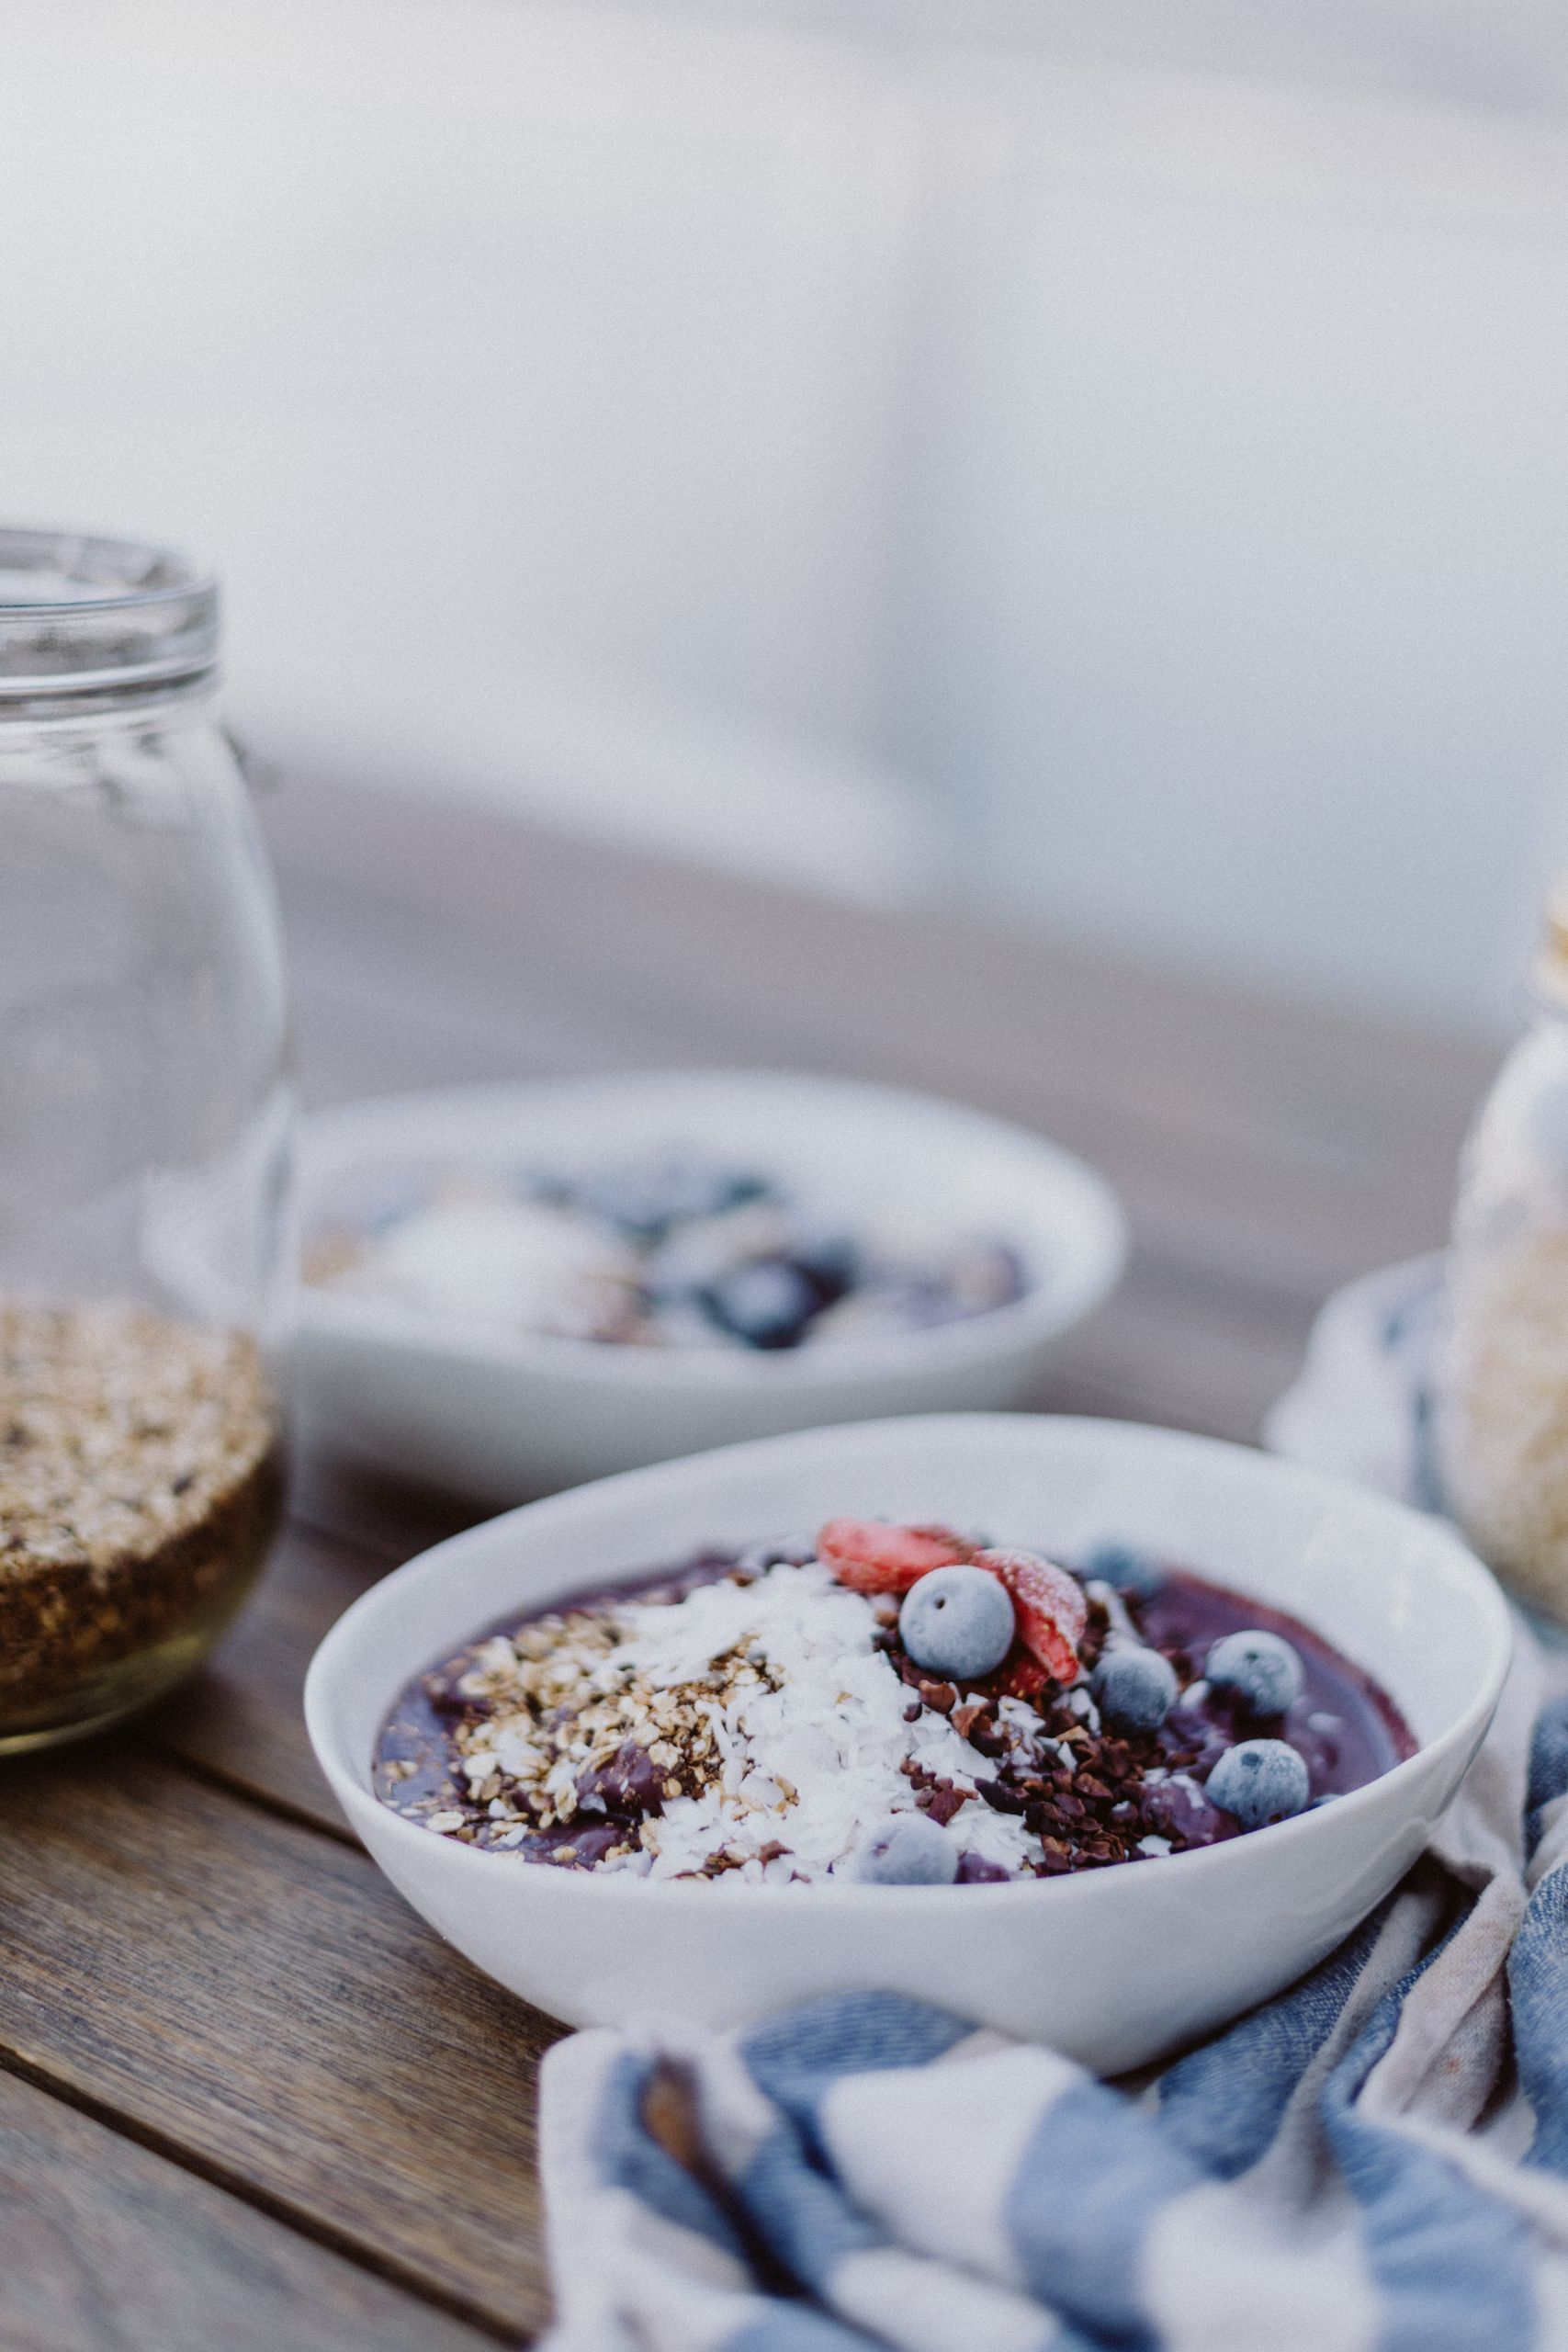 Creamy Homemade Acai Bowls | The Daily Dose